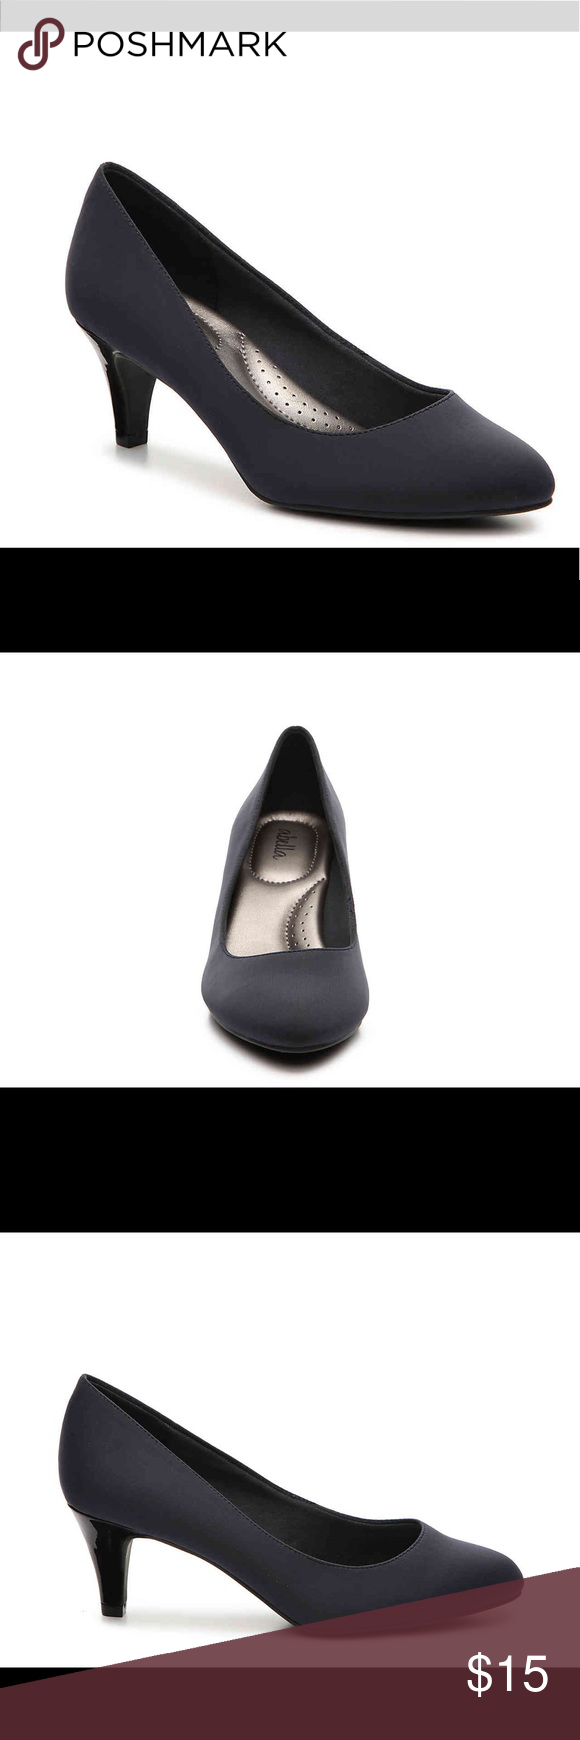 8aacf8ee1cd Abella Sahara Pump Heel Searching for a classic style heel that can be worn  with any